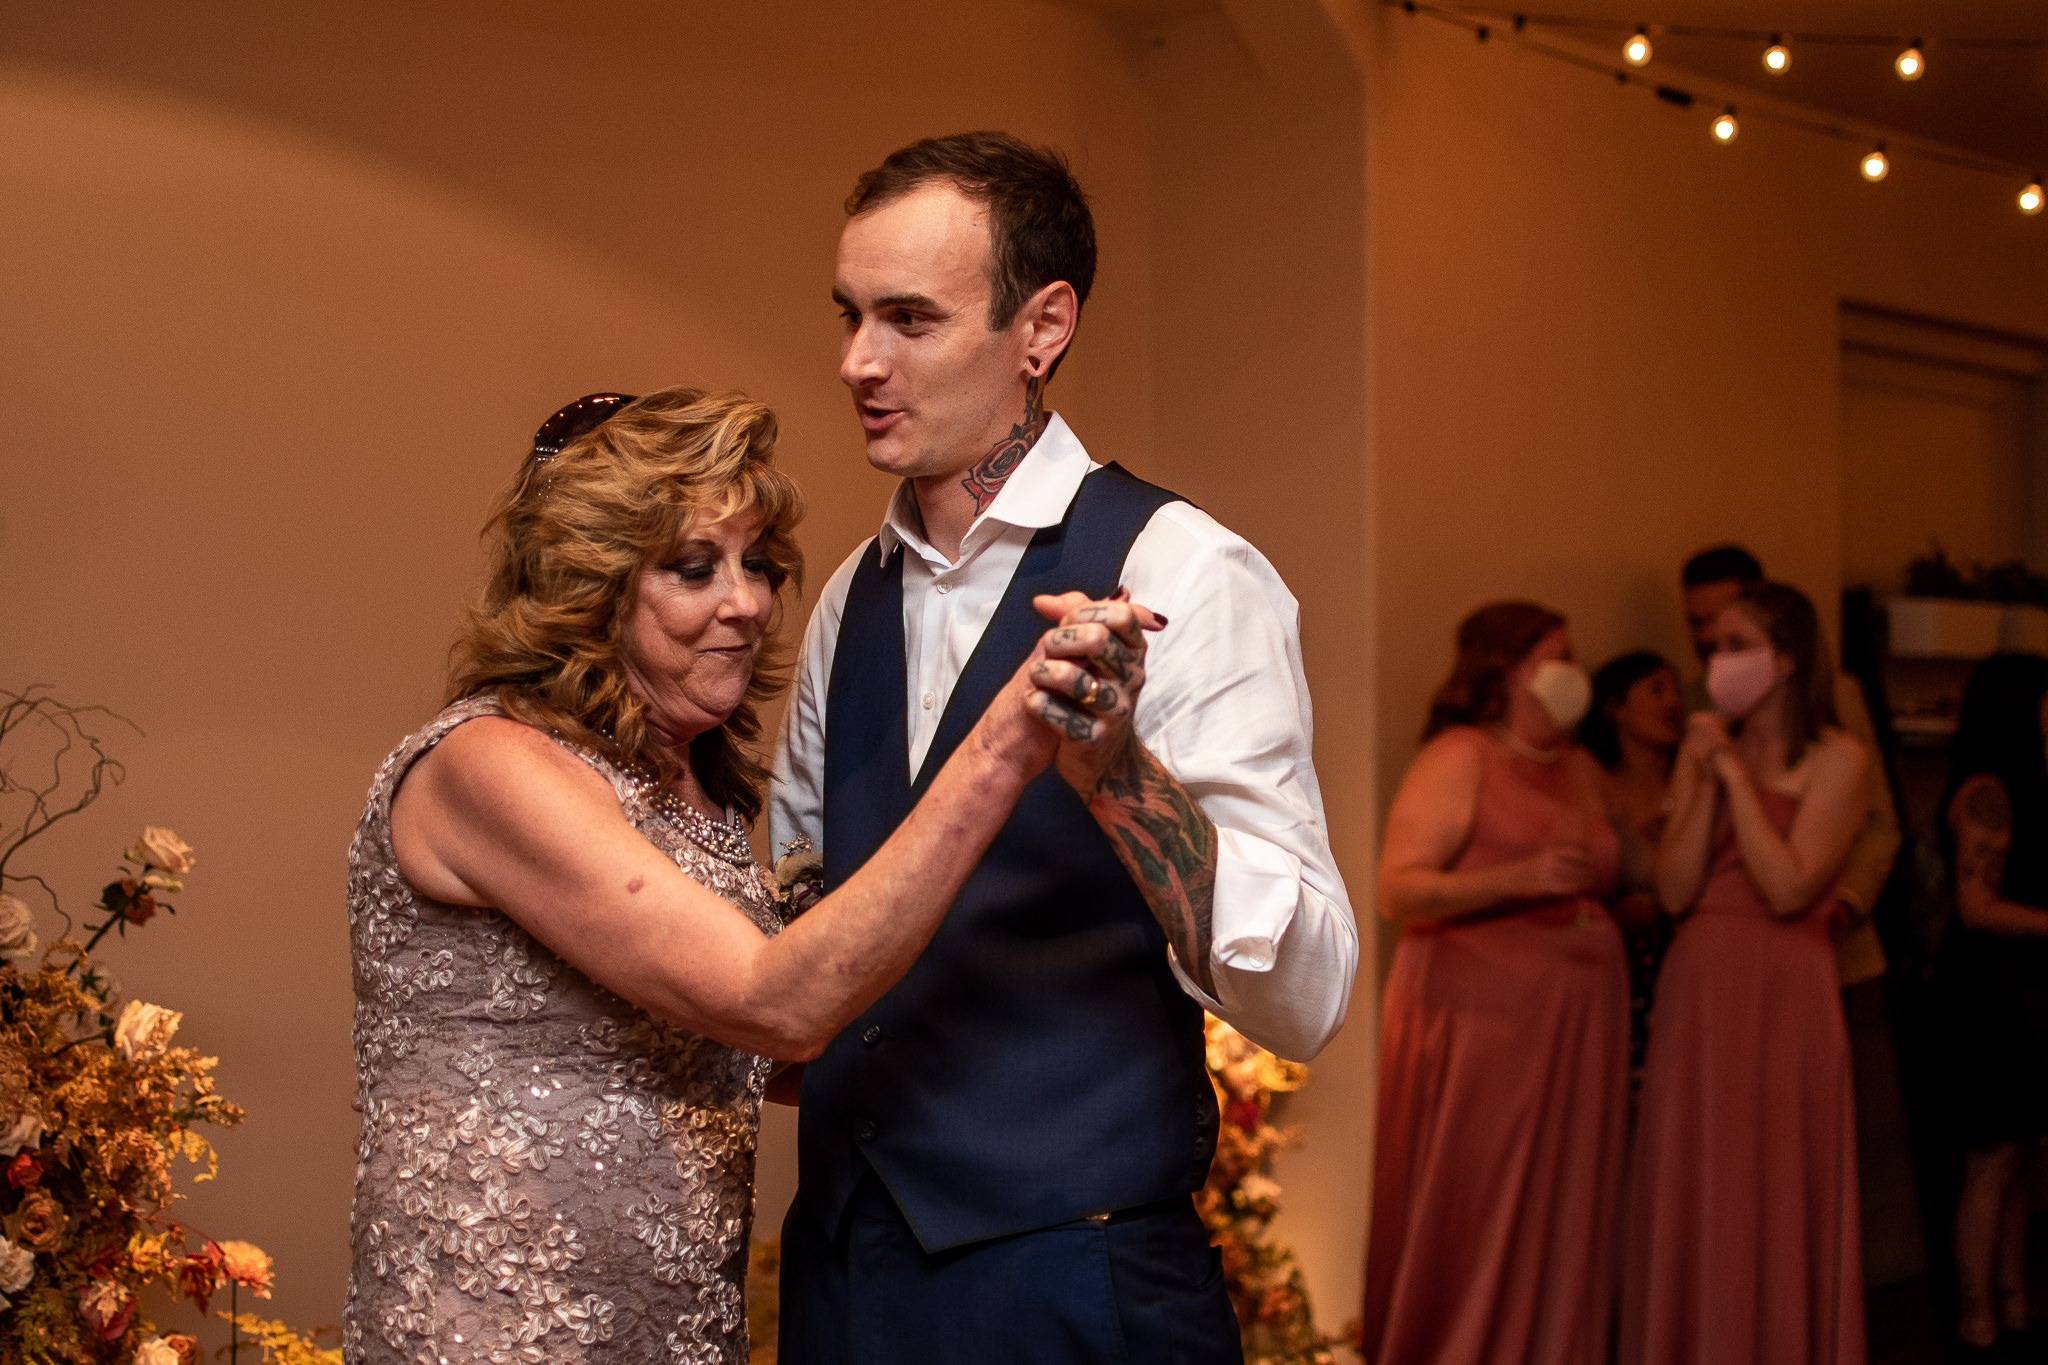 Froom and Mother Dance